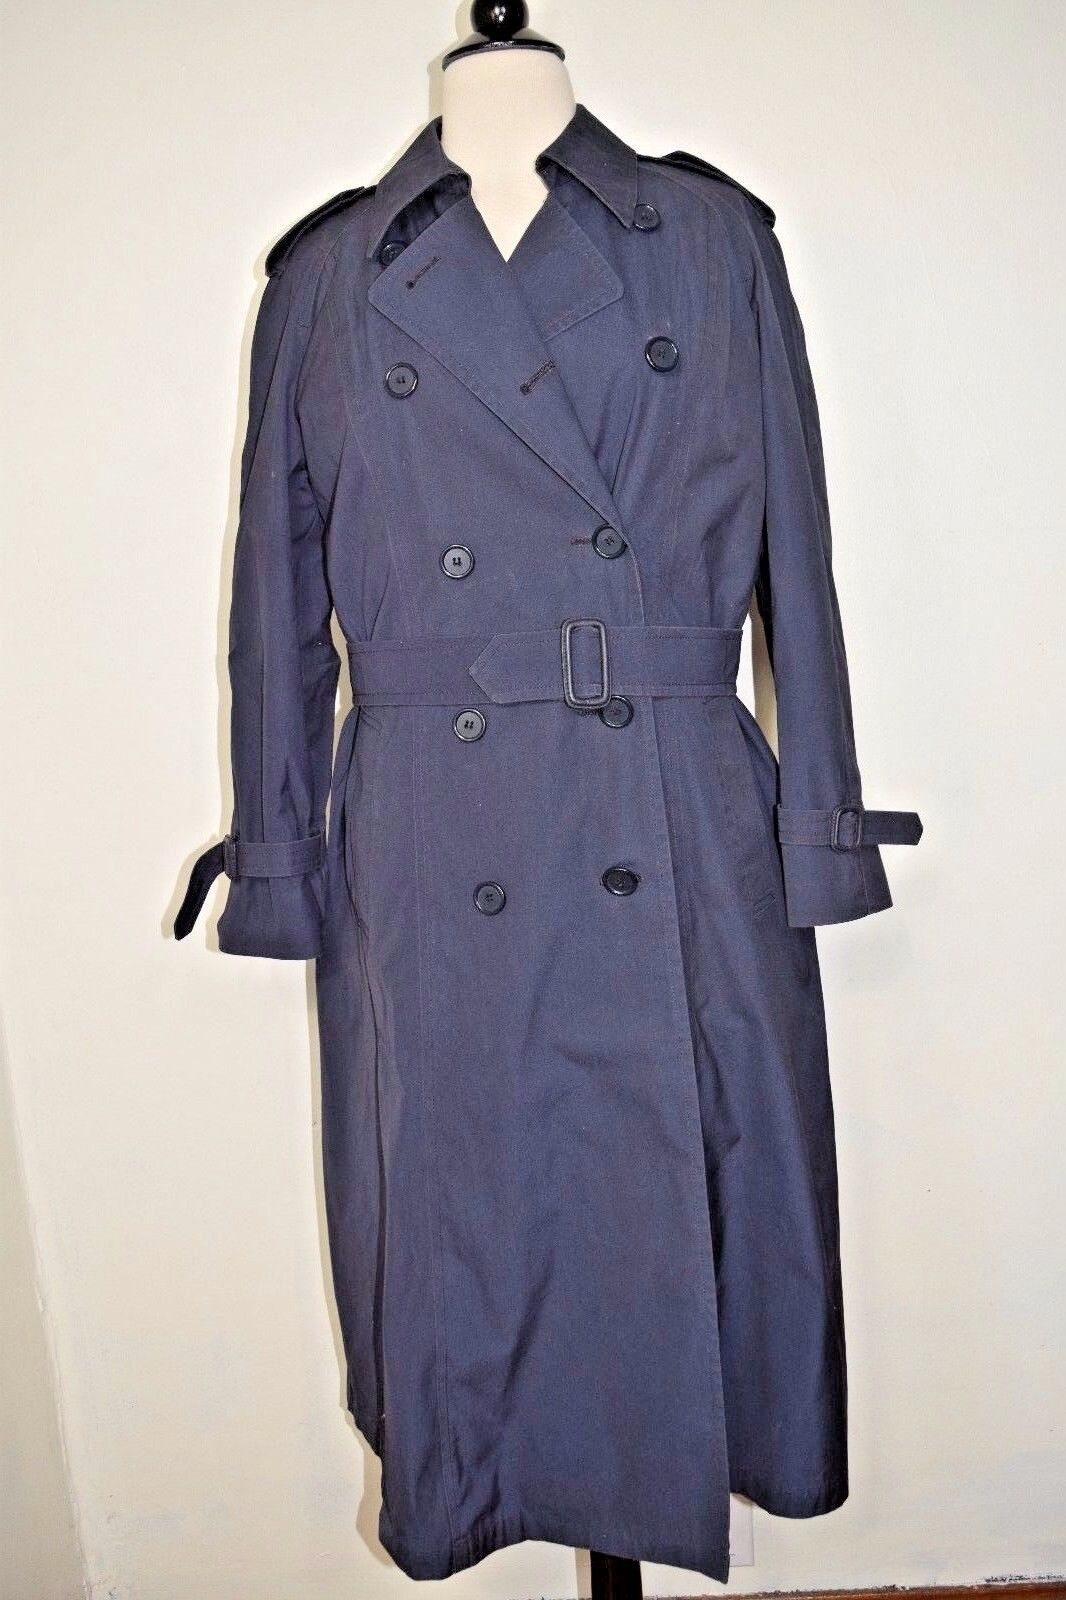 DSCP Defender Collection Trench Rain Coat Navy bluee Military Fleece Lining Sz 6R